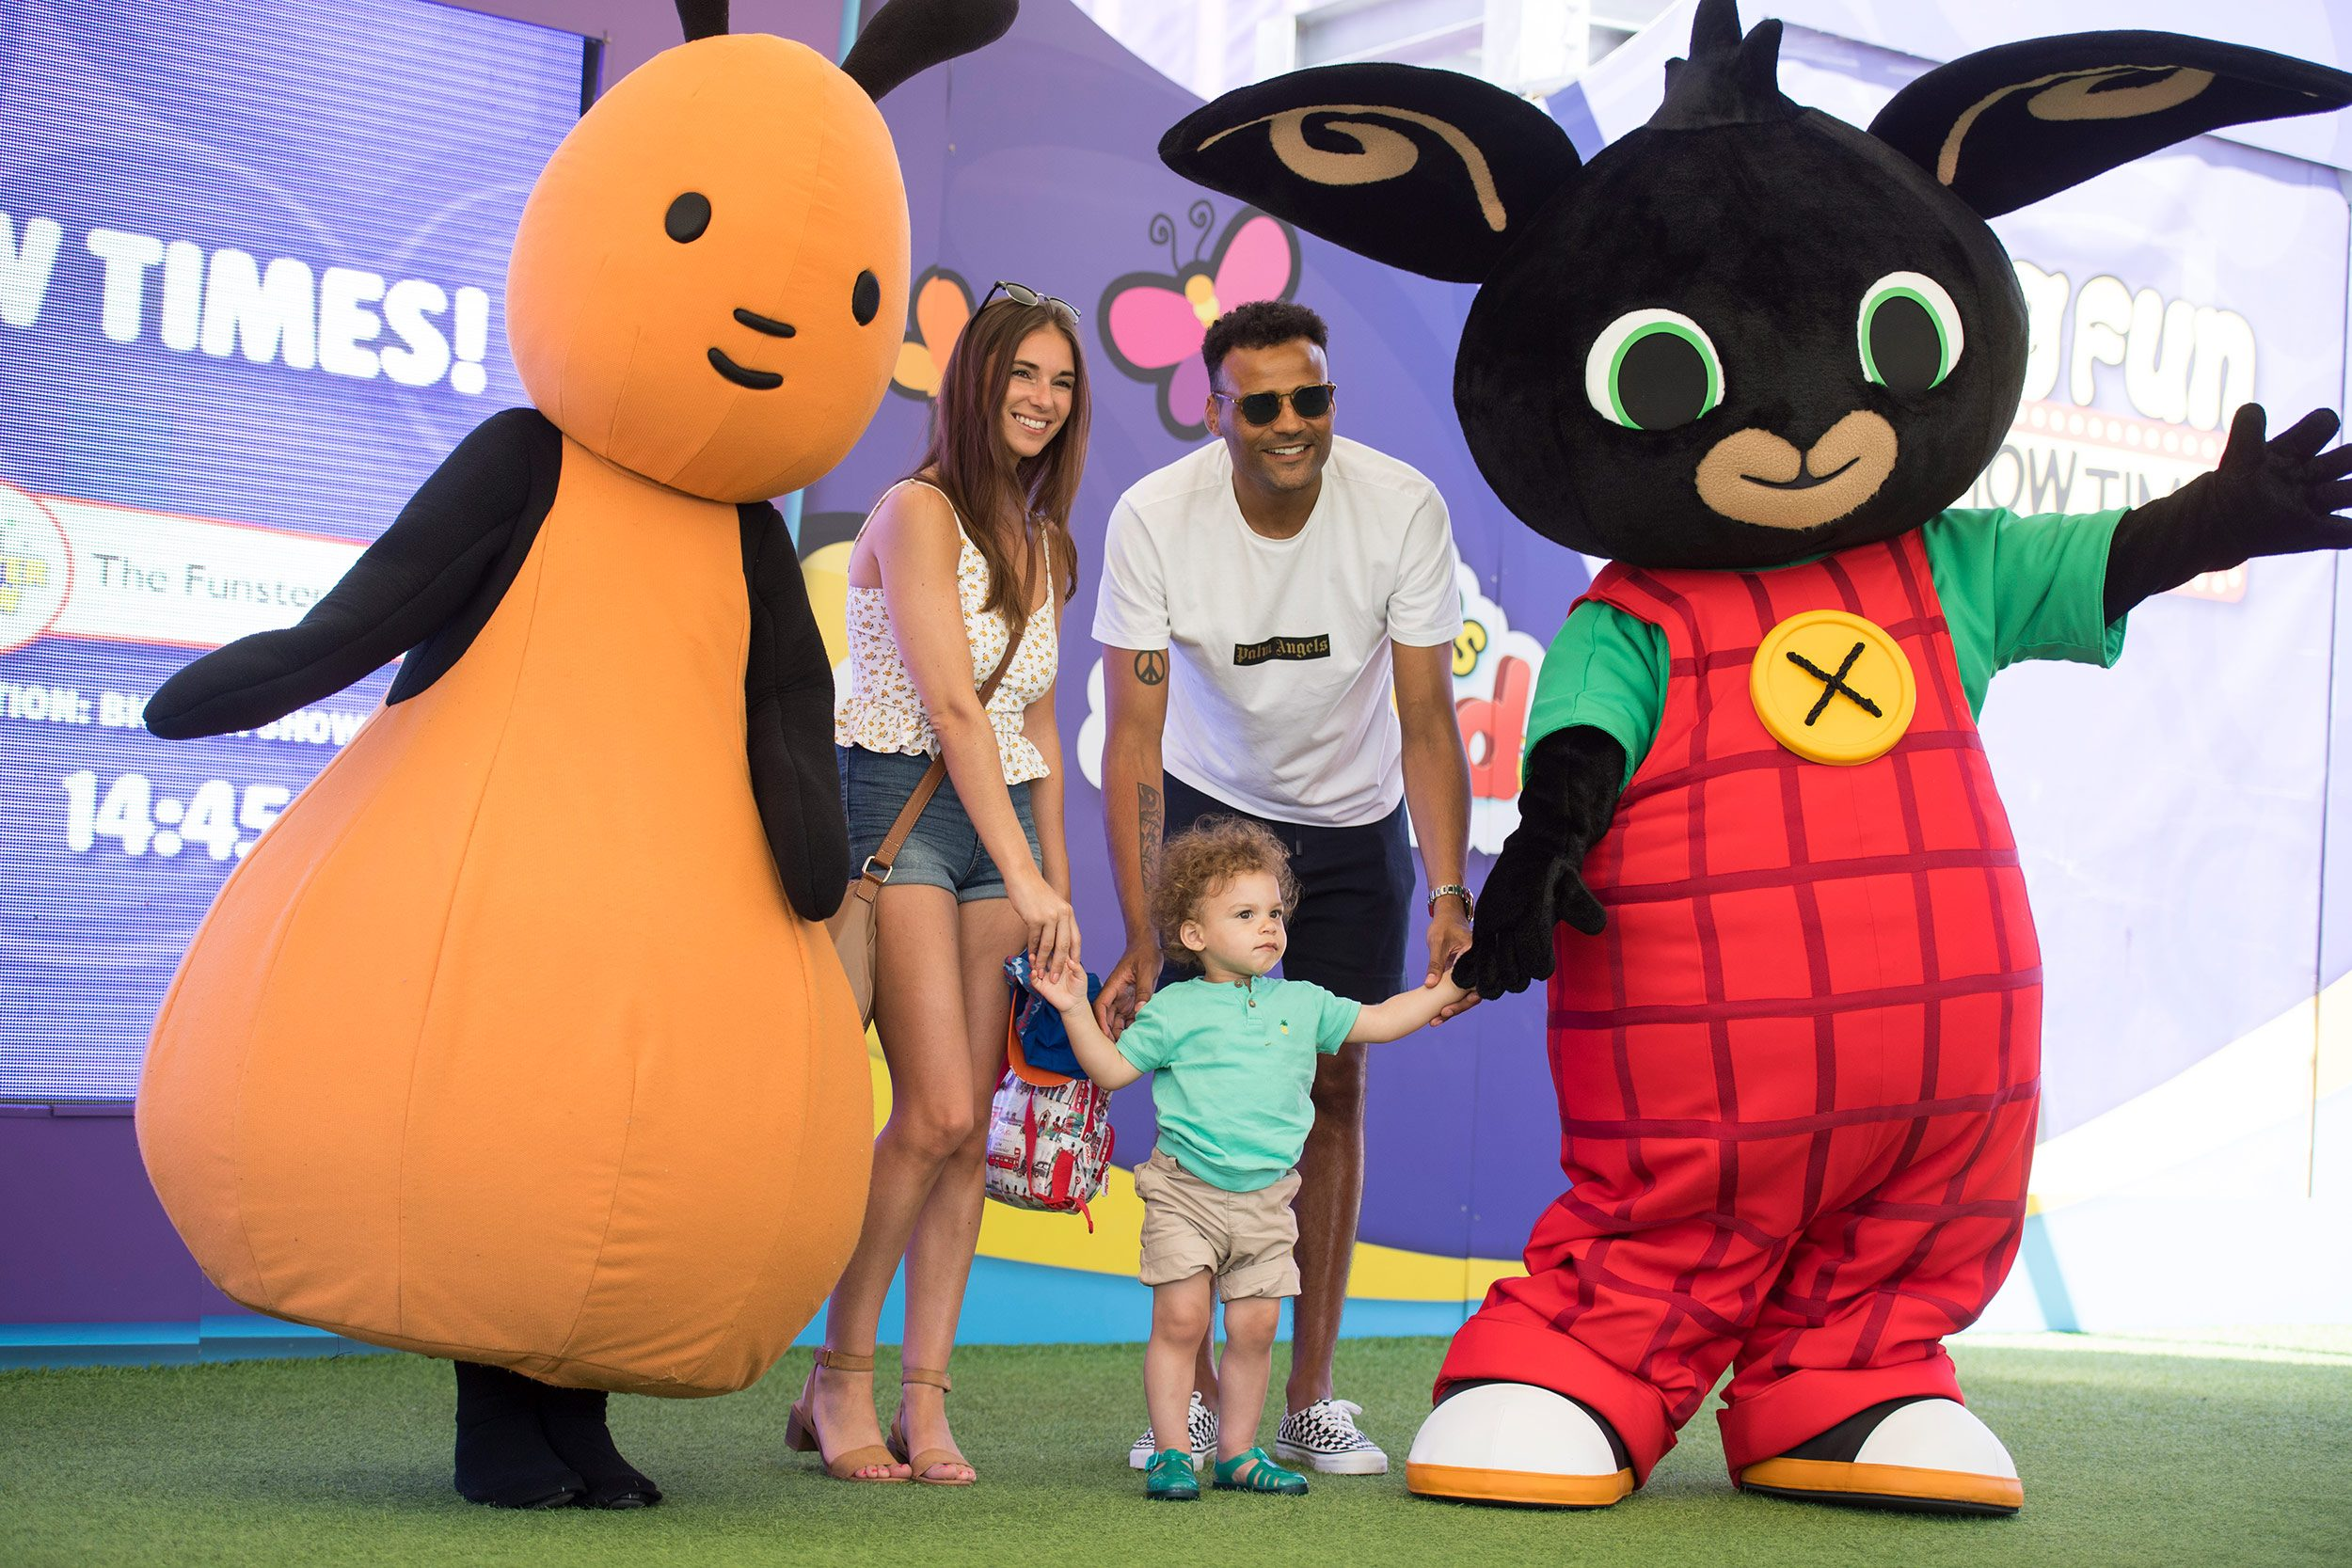 Parents take their child to meet two characters from the BBC's CBeebies at a theme park